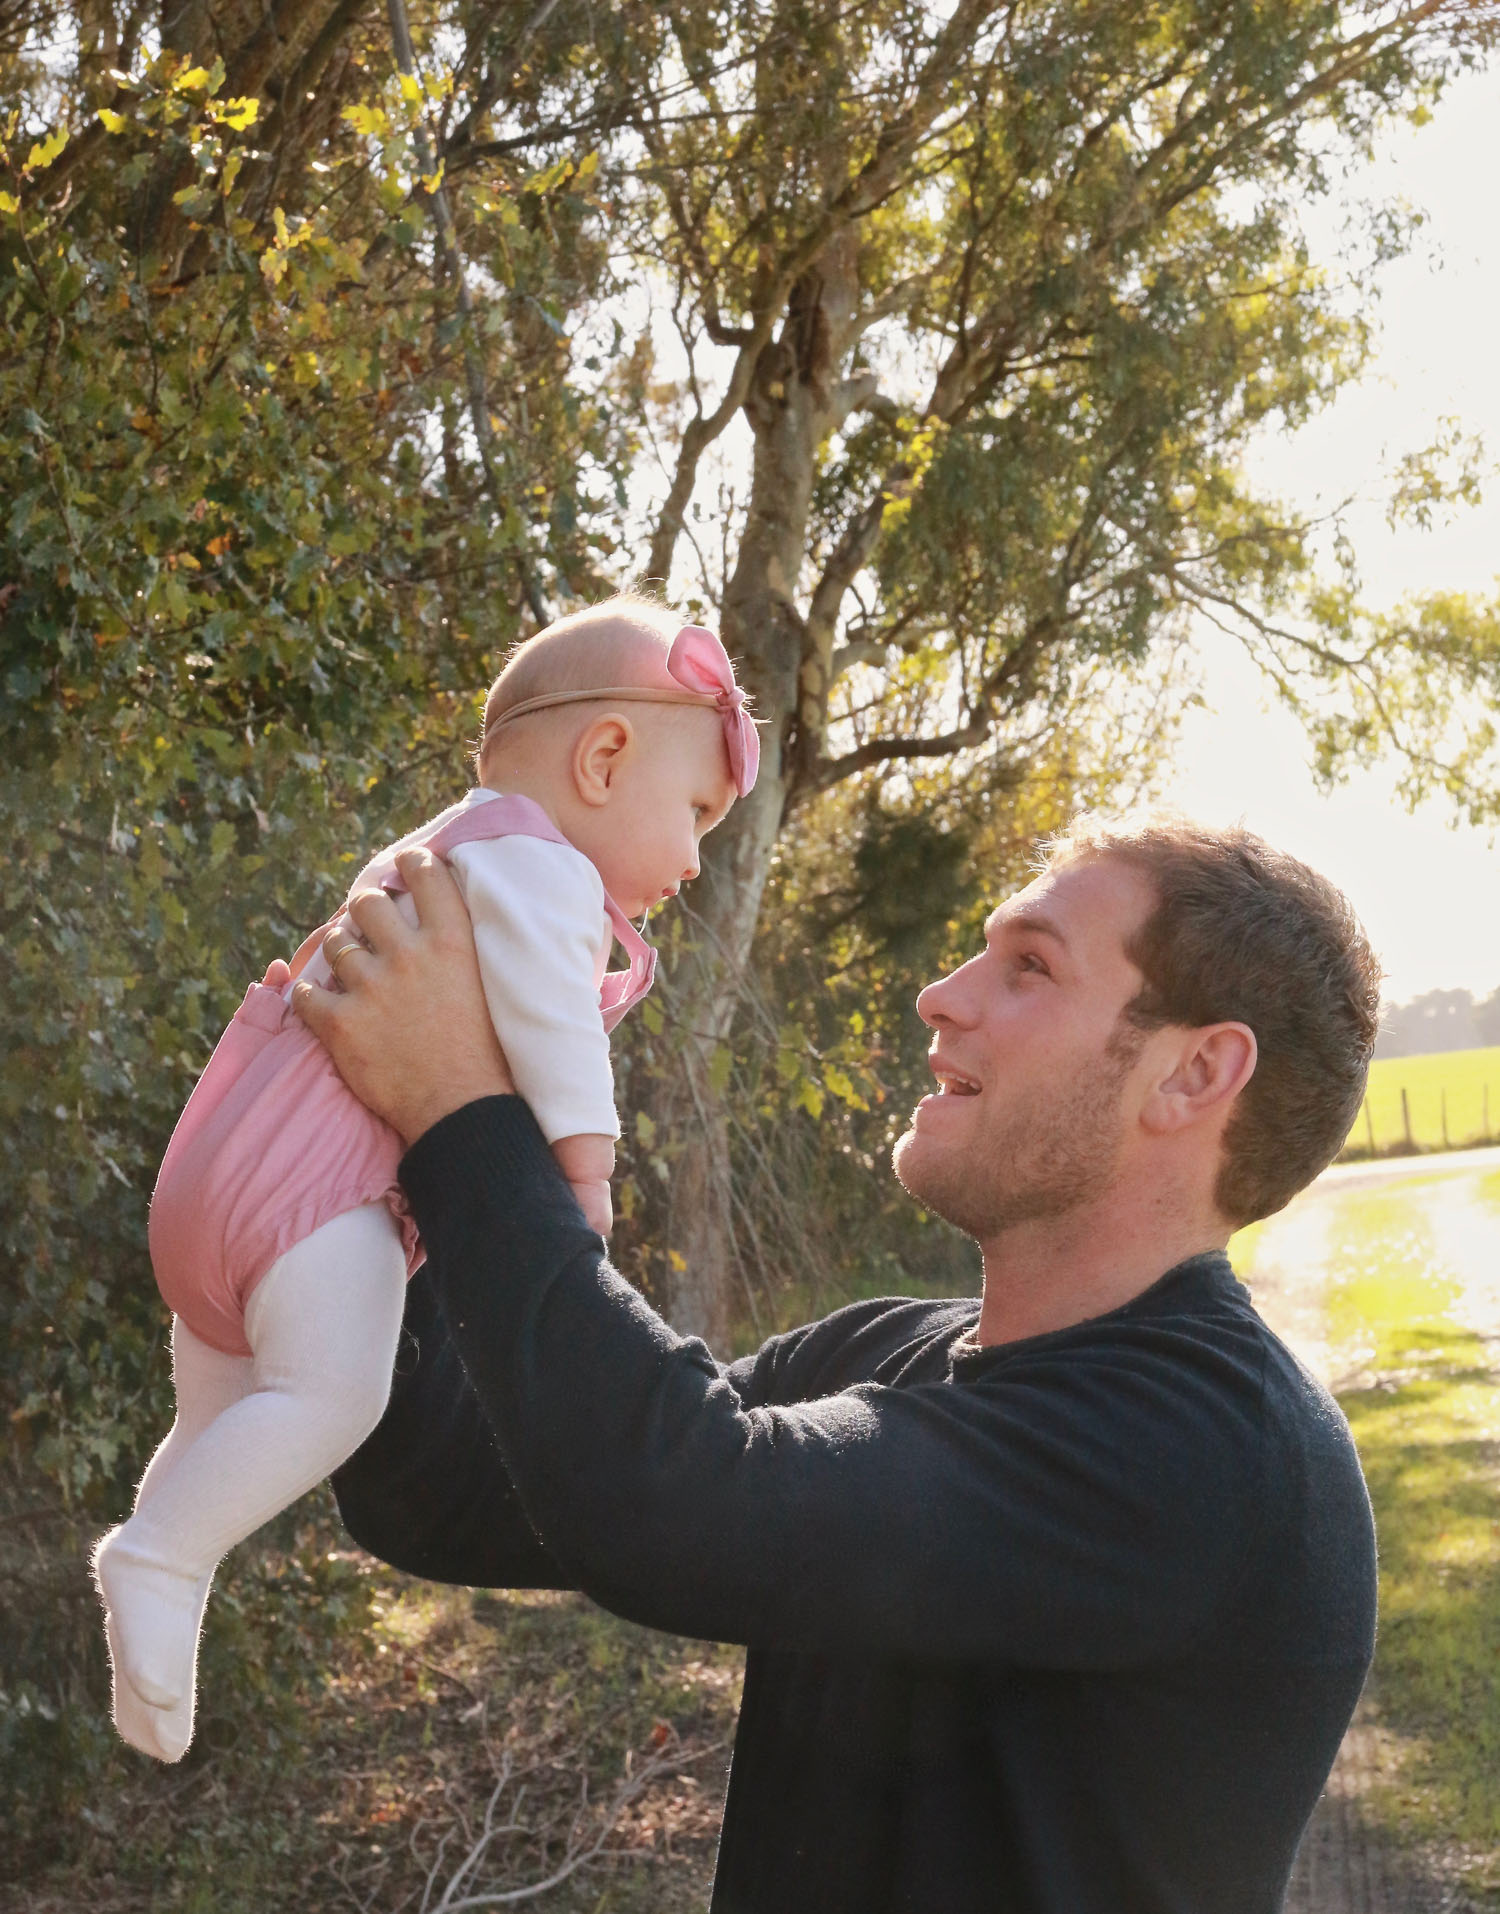 daddy-and-his-baby-girl-flying-high-in-daddies-arms.jpg